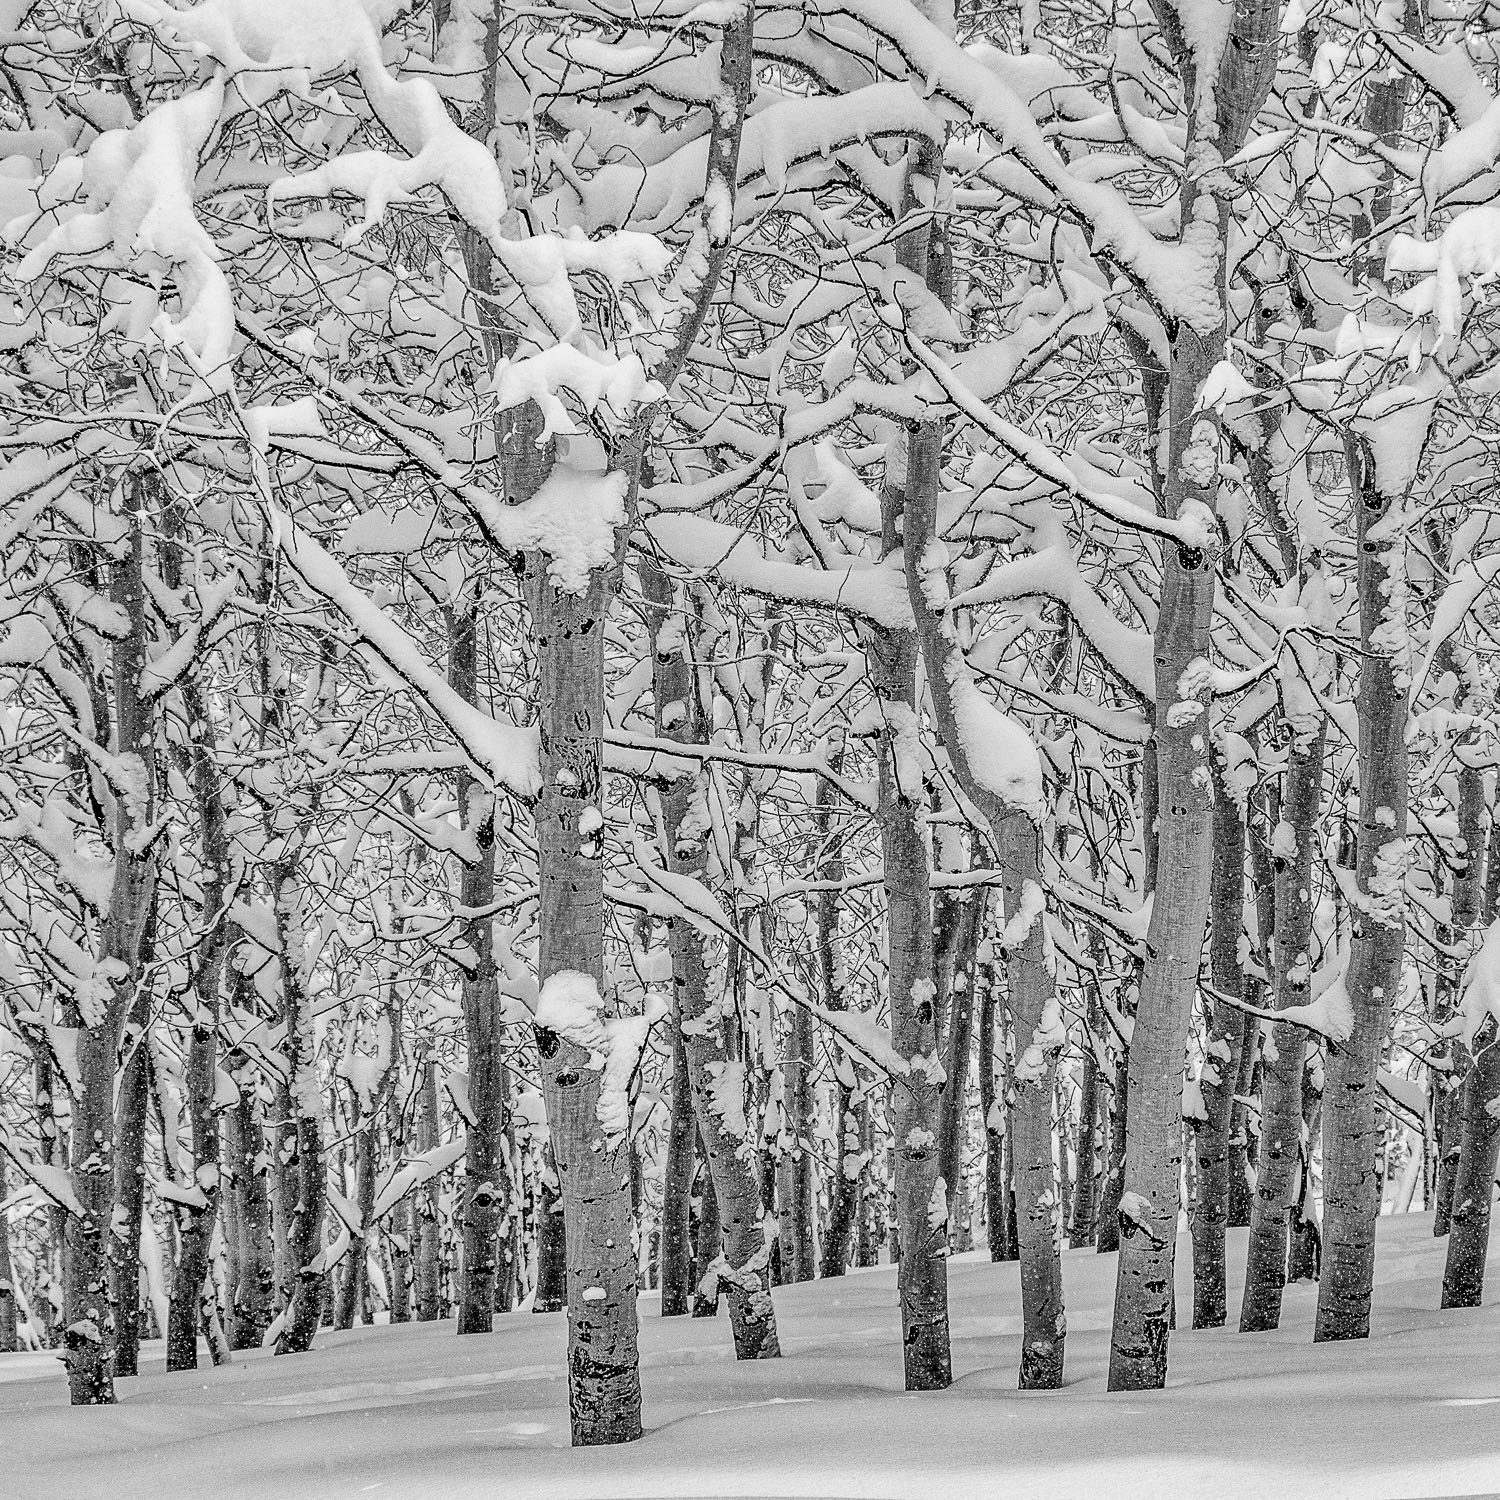 Black and White B&W Photograph of Aspen Trunks and New Snow, Was